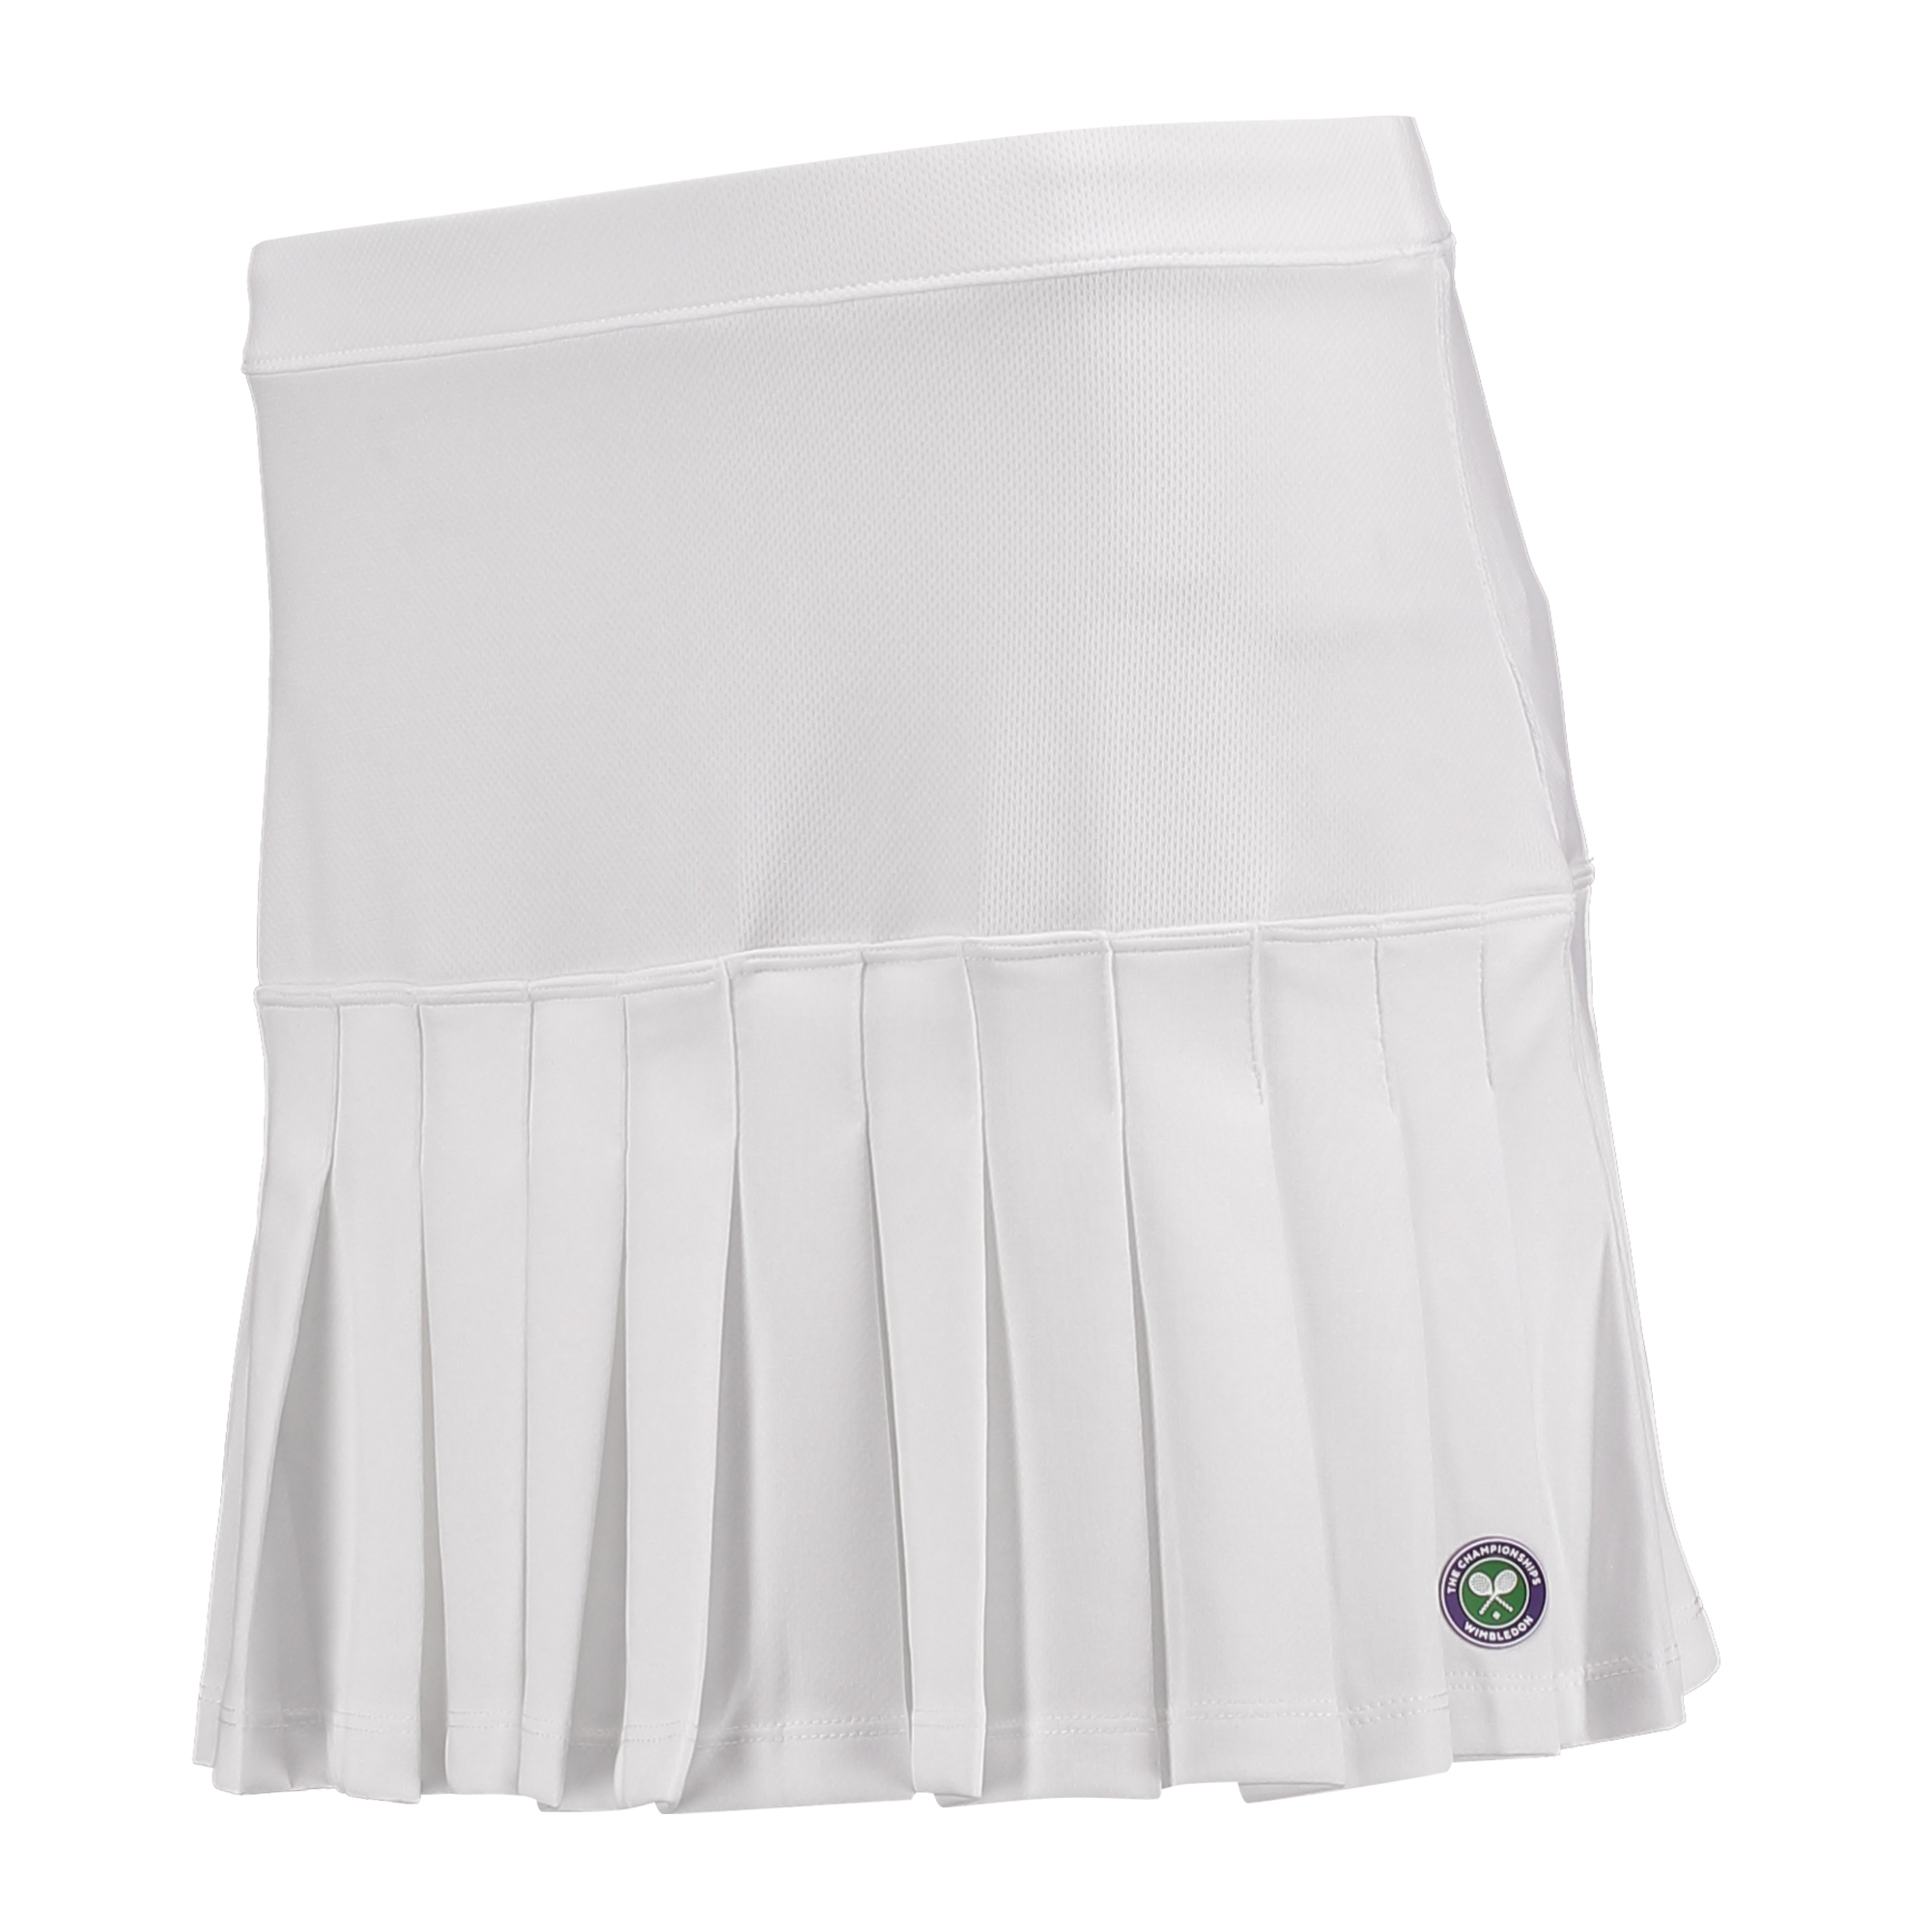 Wimbledon Technical Skirt - White - Ladies